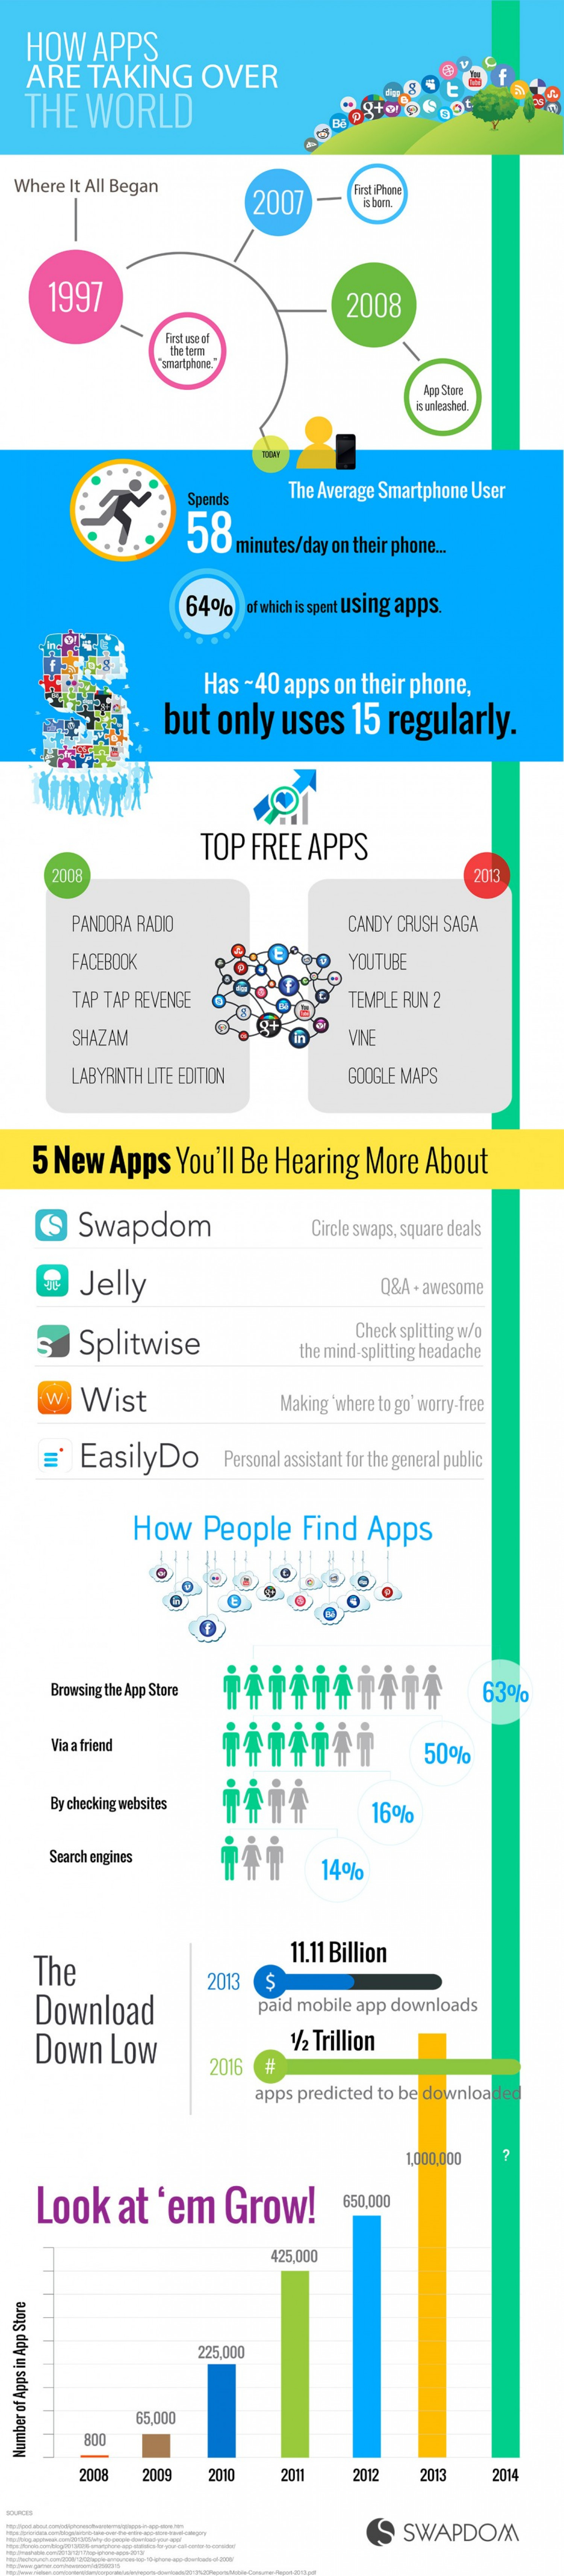 How Apps Are Taking Over the World  Infographic